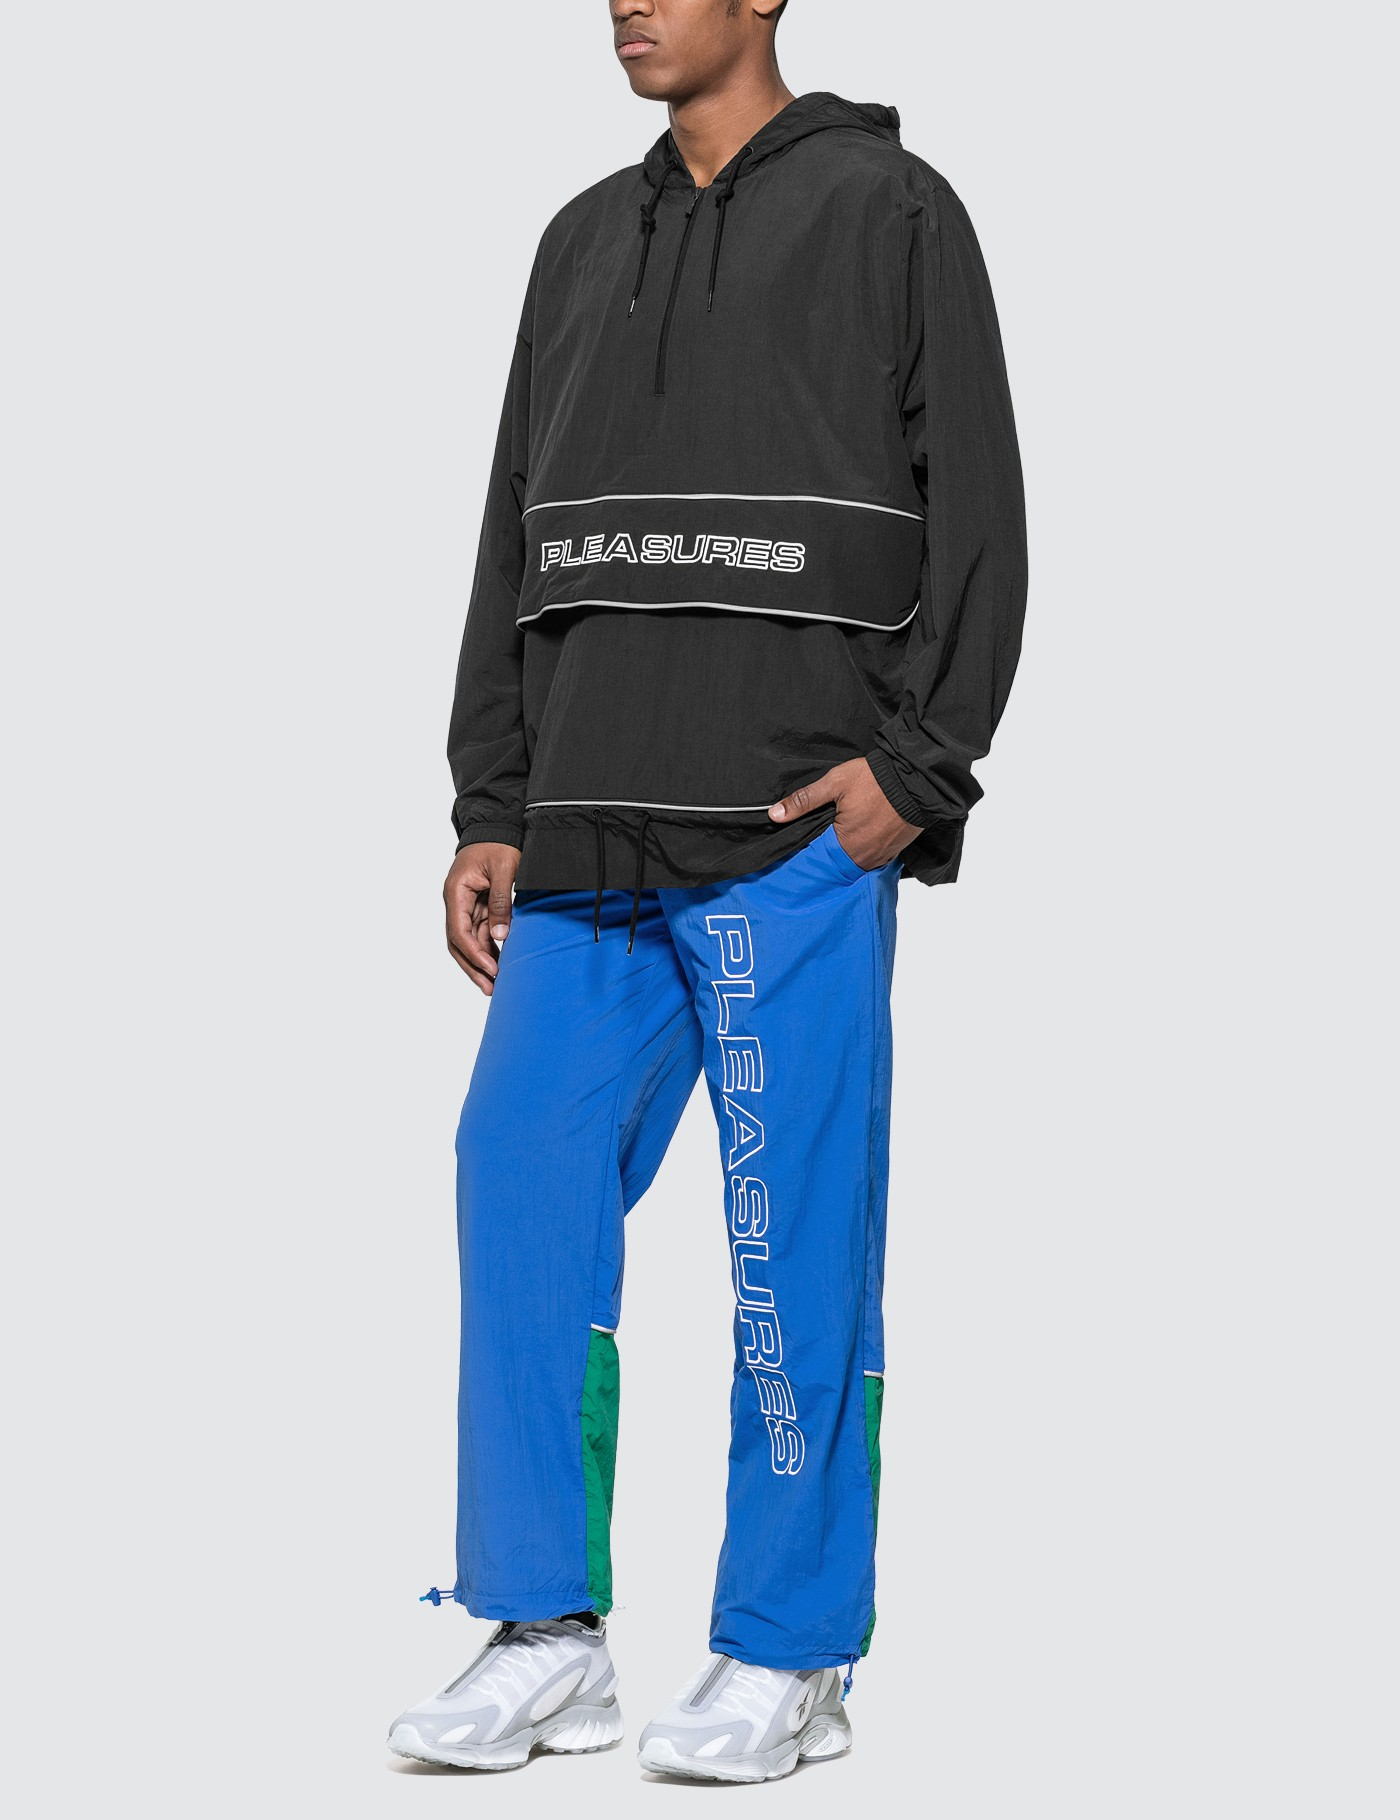 Reebok Pleasures x  Vector Pants